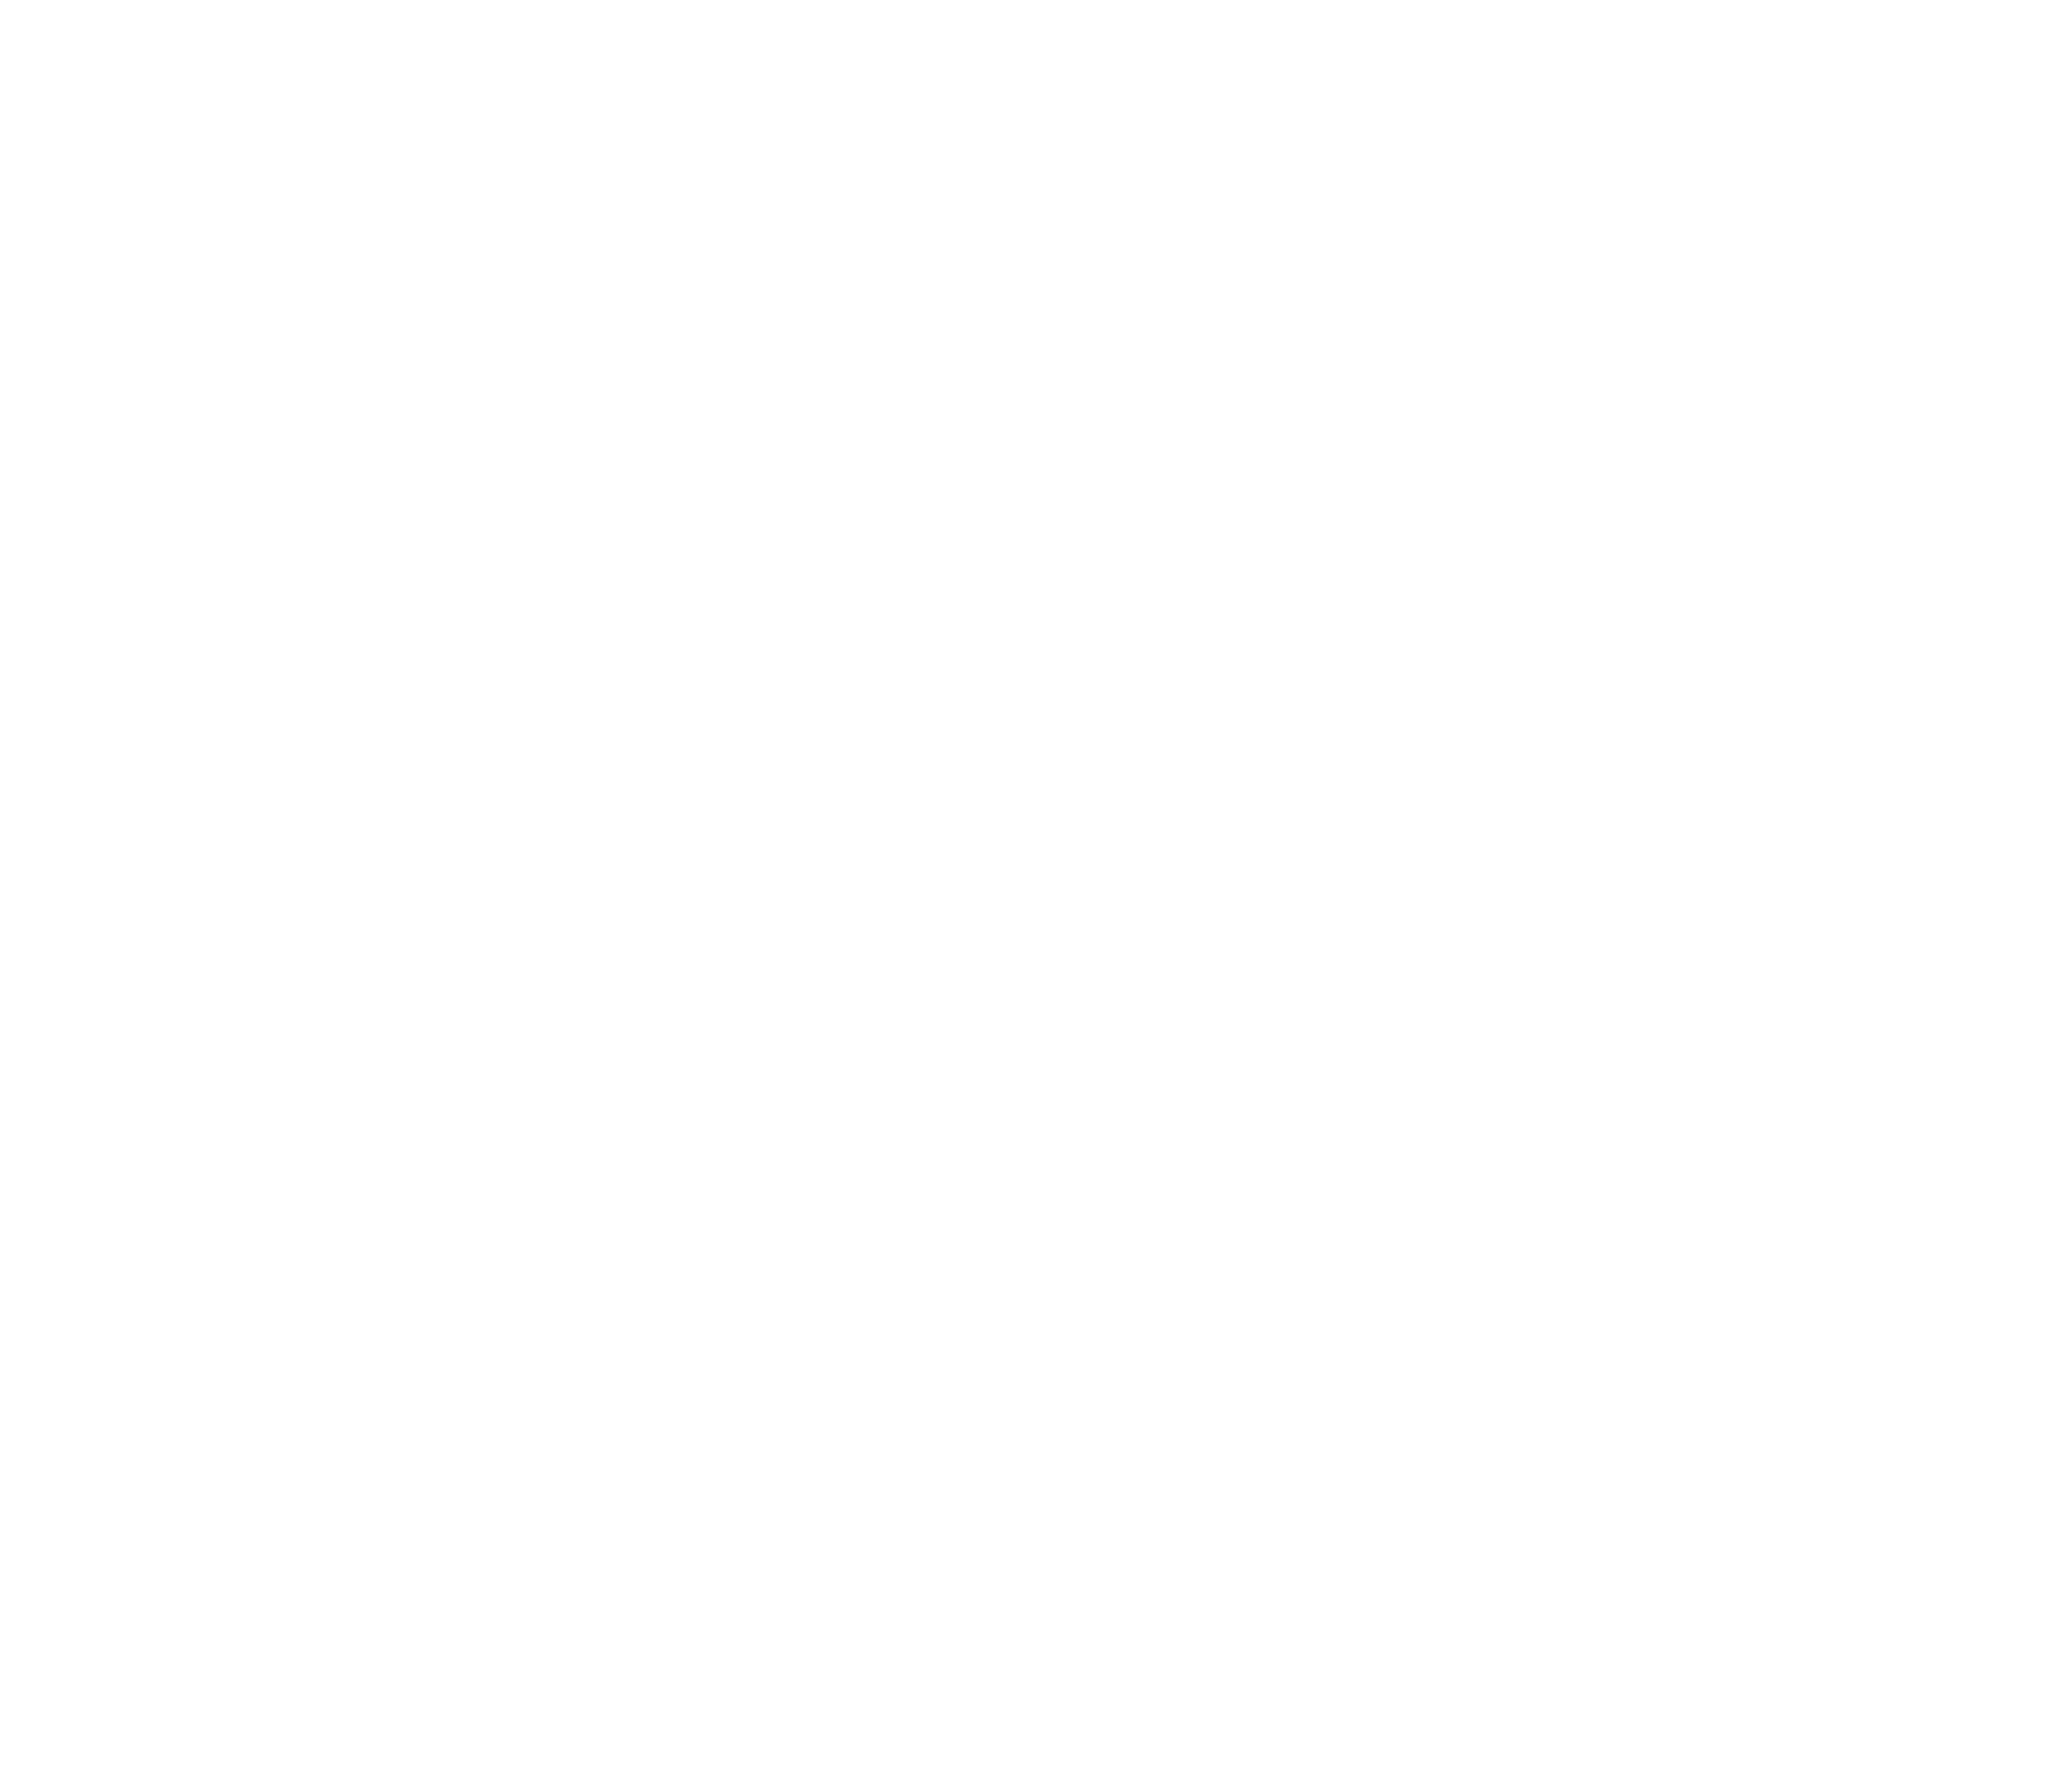 Jaeger Ramz - Ancillary services to the Oil and Gas Industry